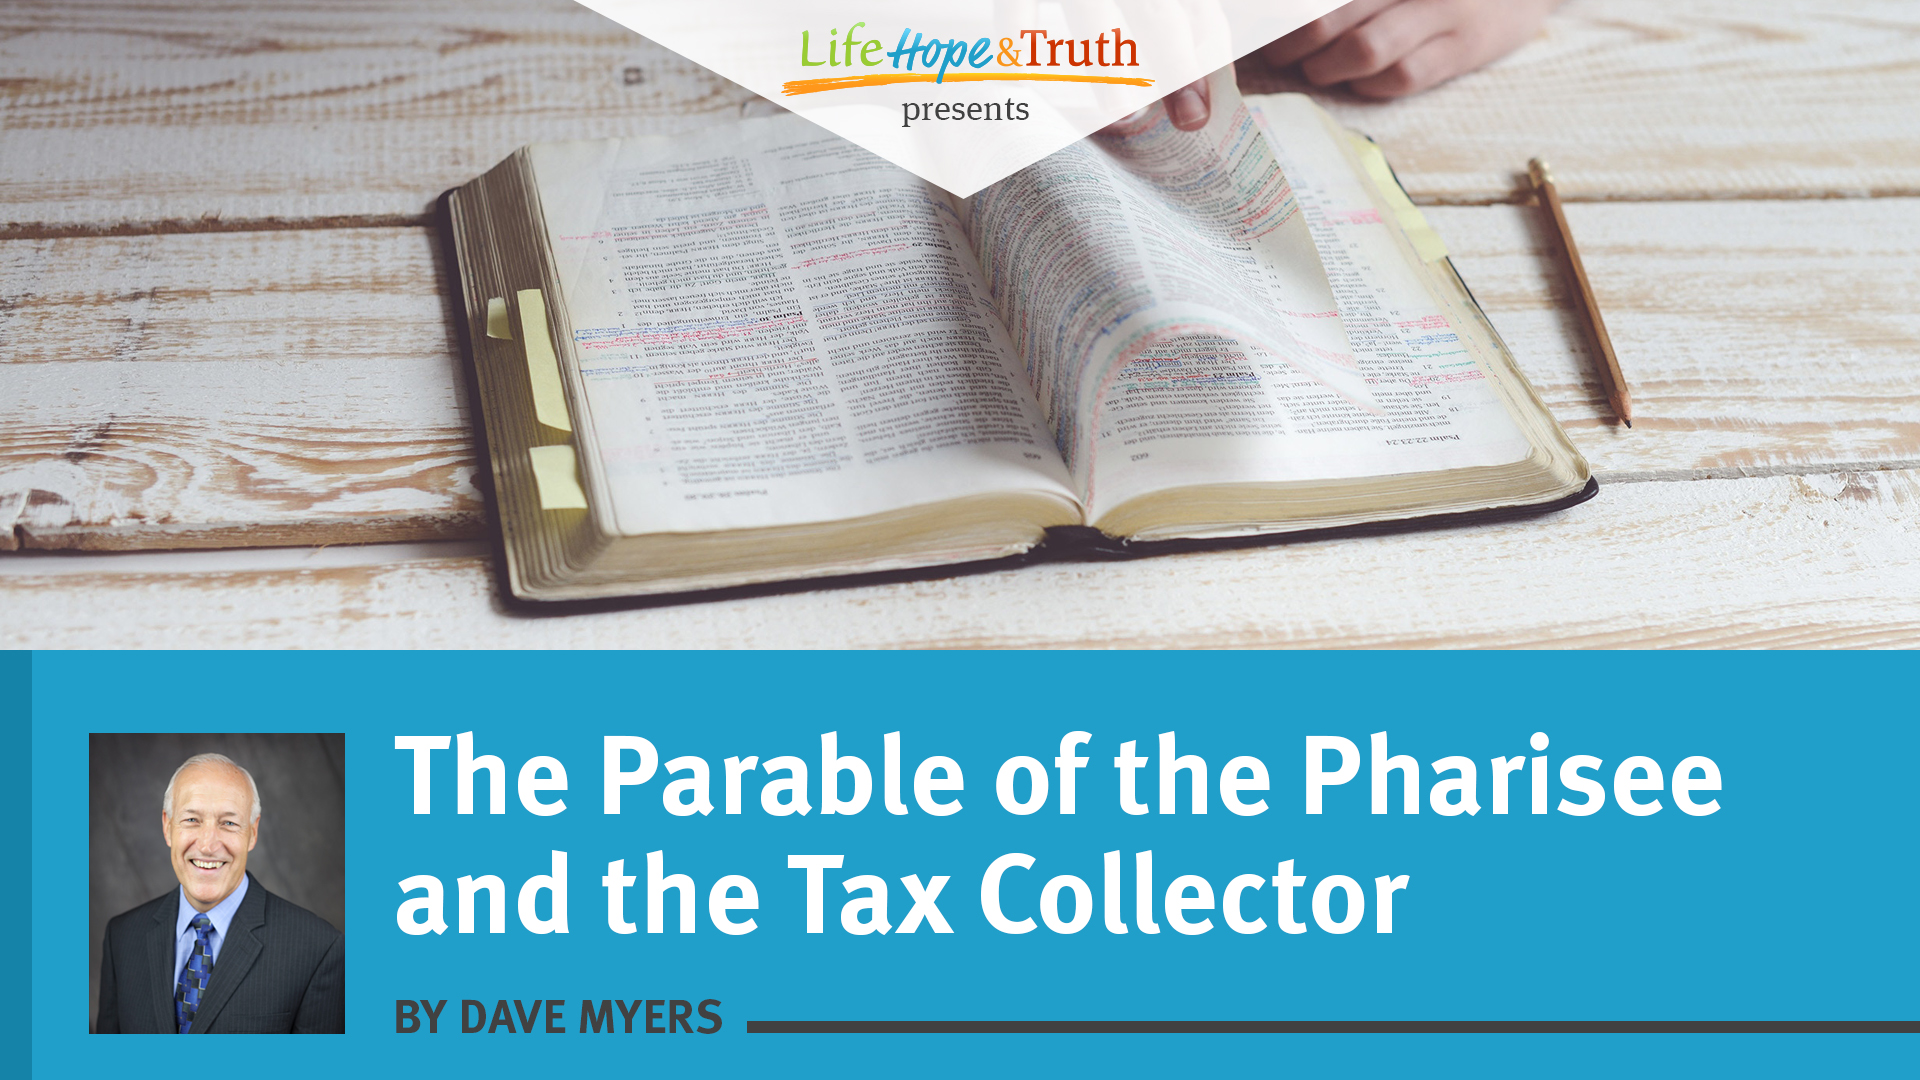 The Parable of the Pharisee and the Tax Collector